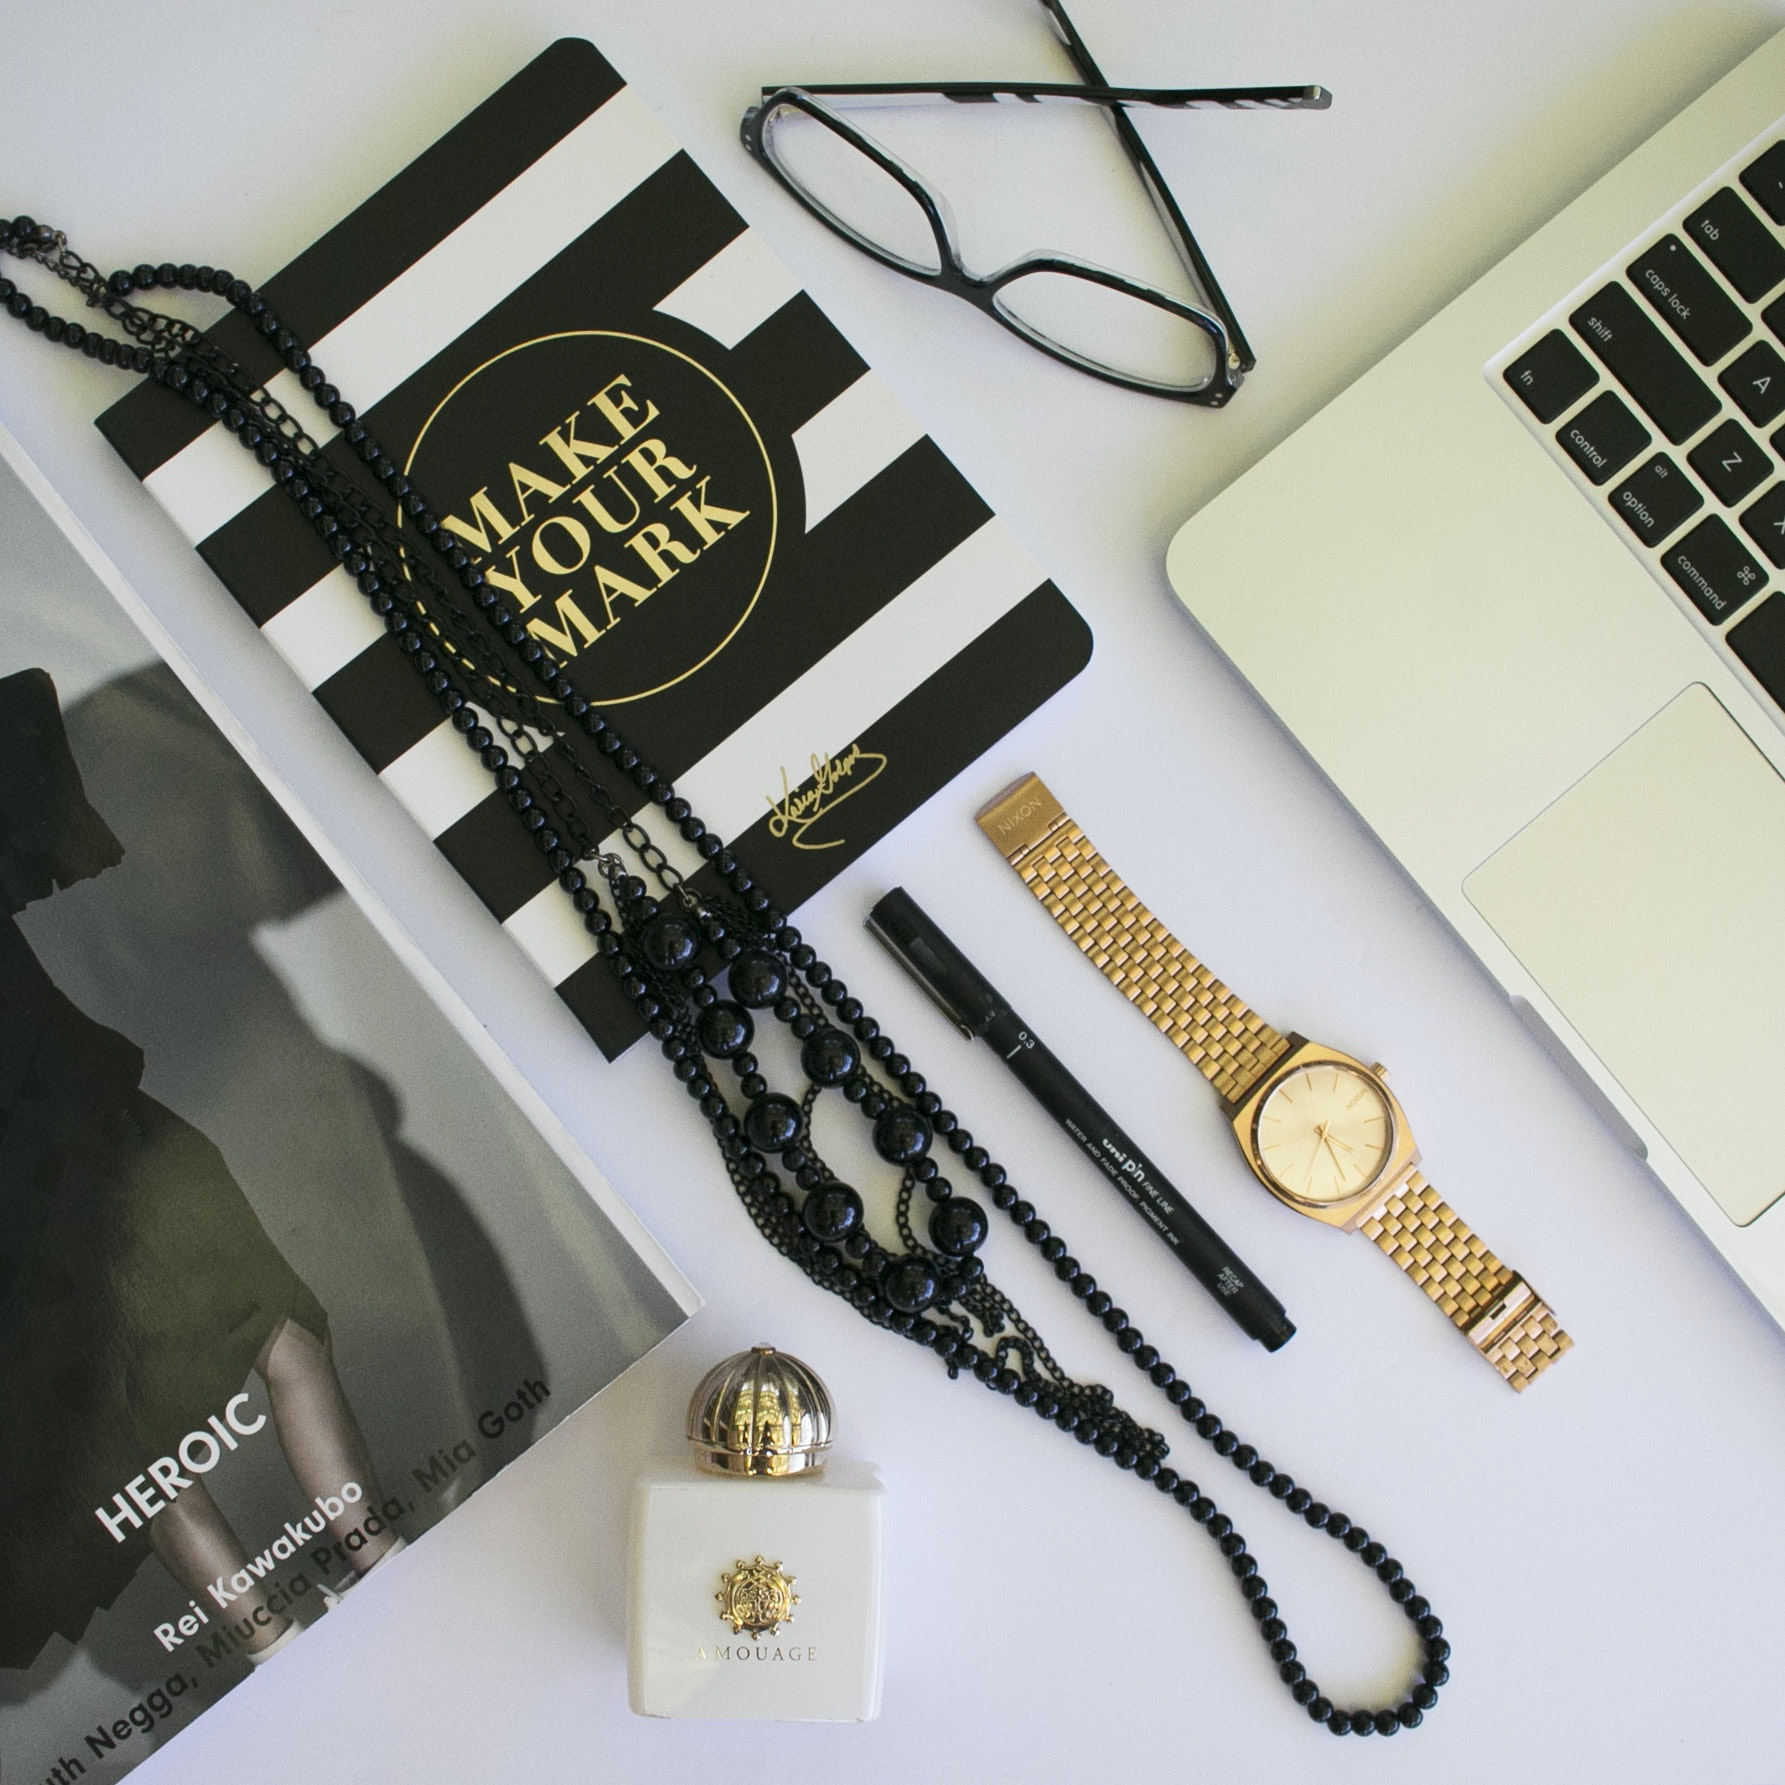 clear eyeglasses with black frames; beaded black necklaces; black pen; round gold-colored analog watch with link bracelet in flat lay photography